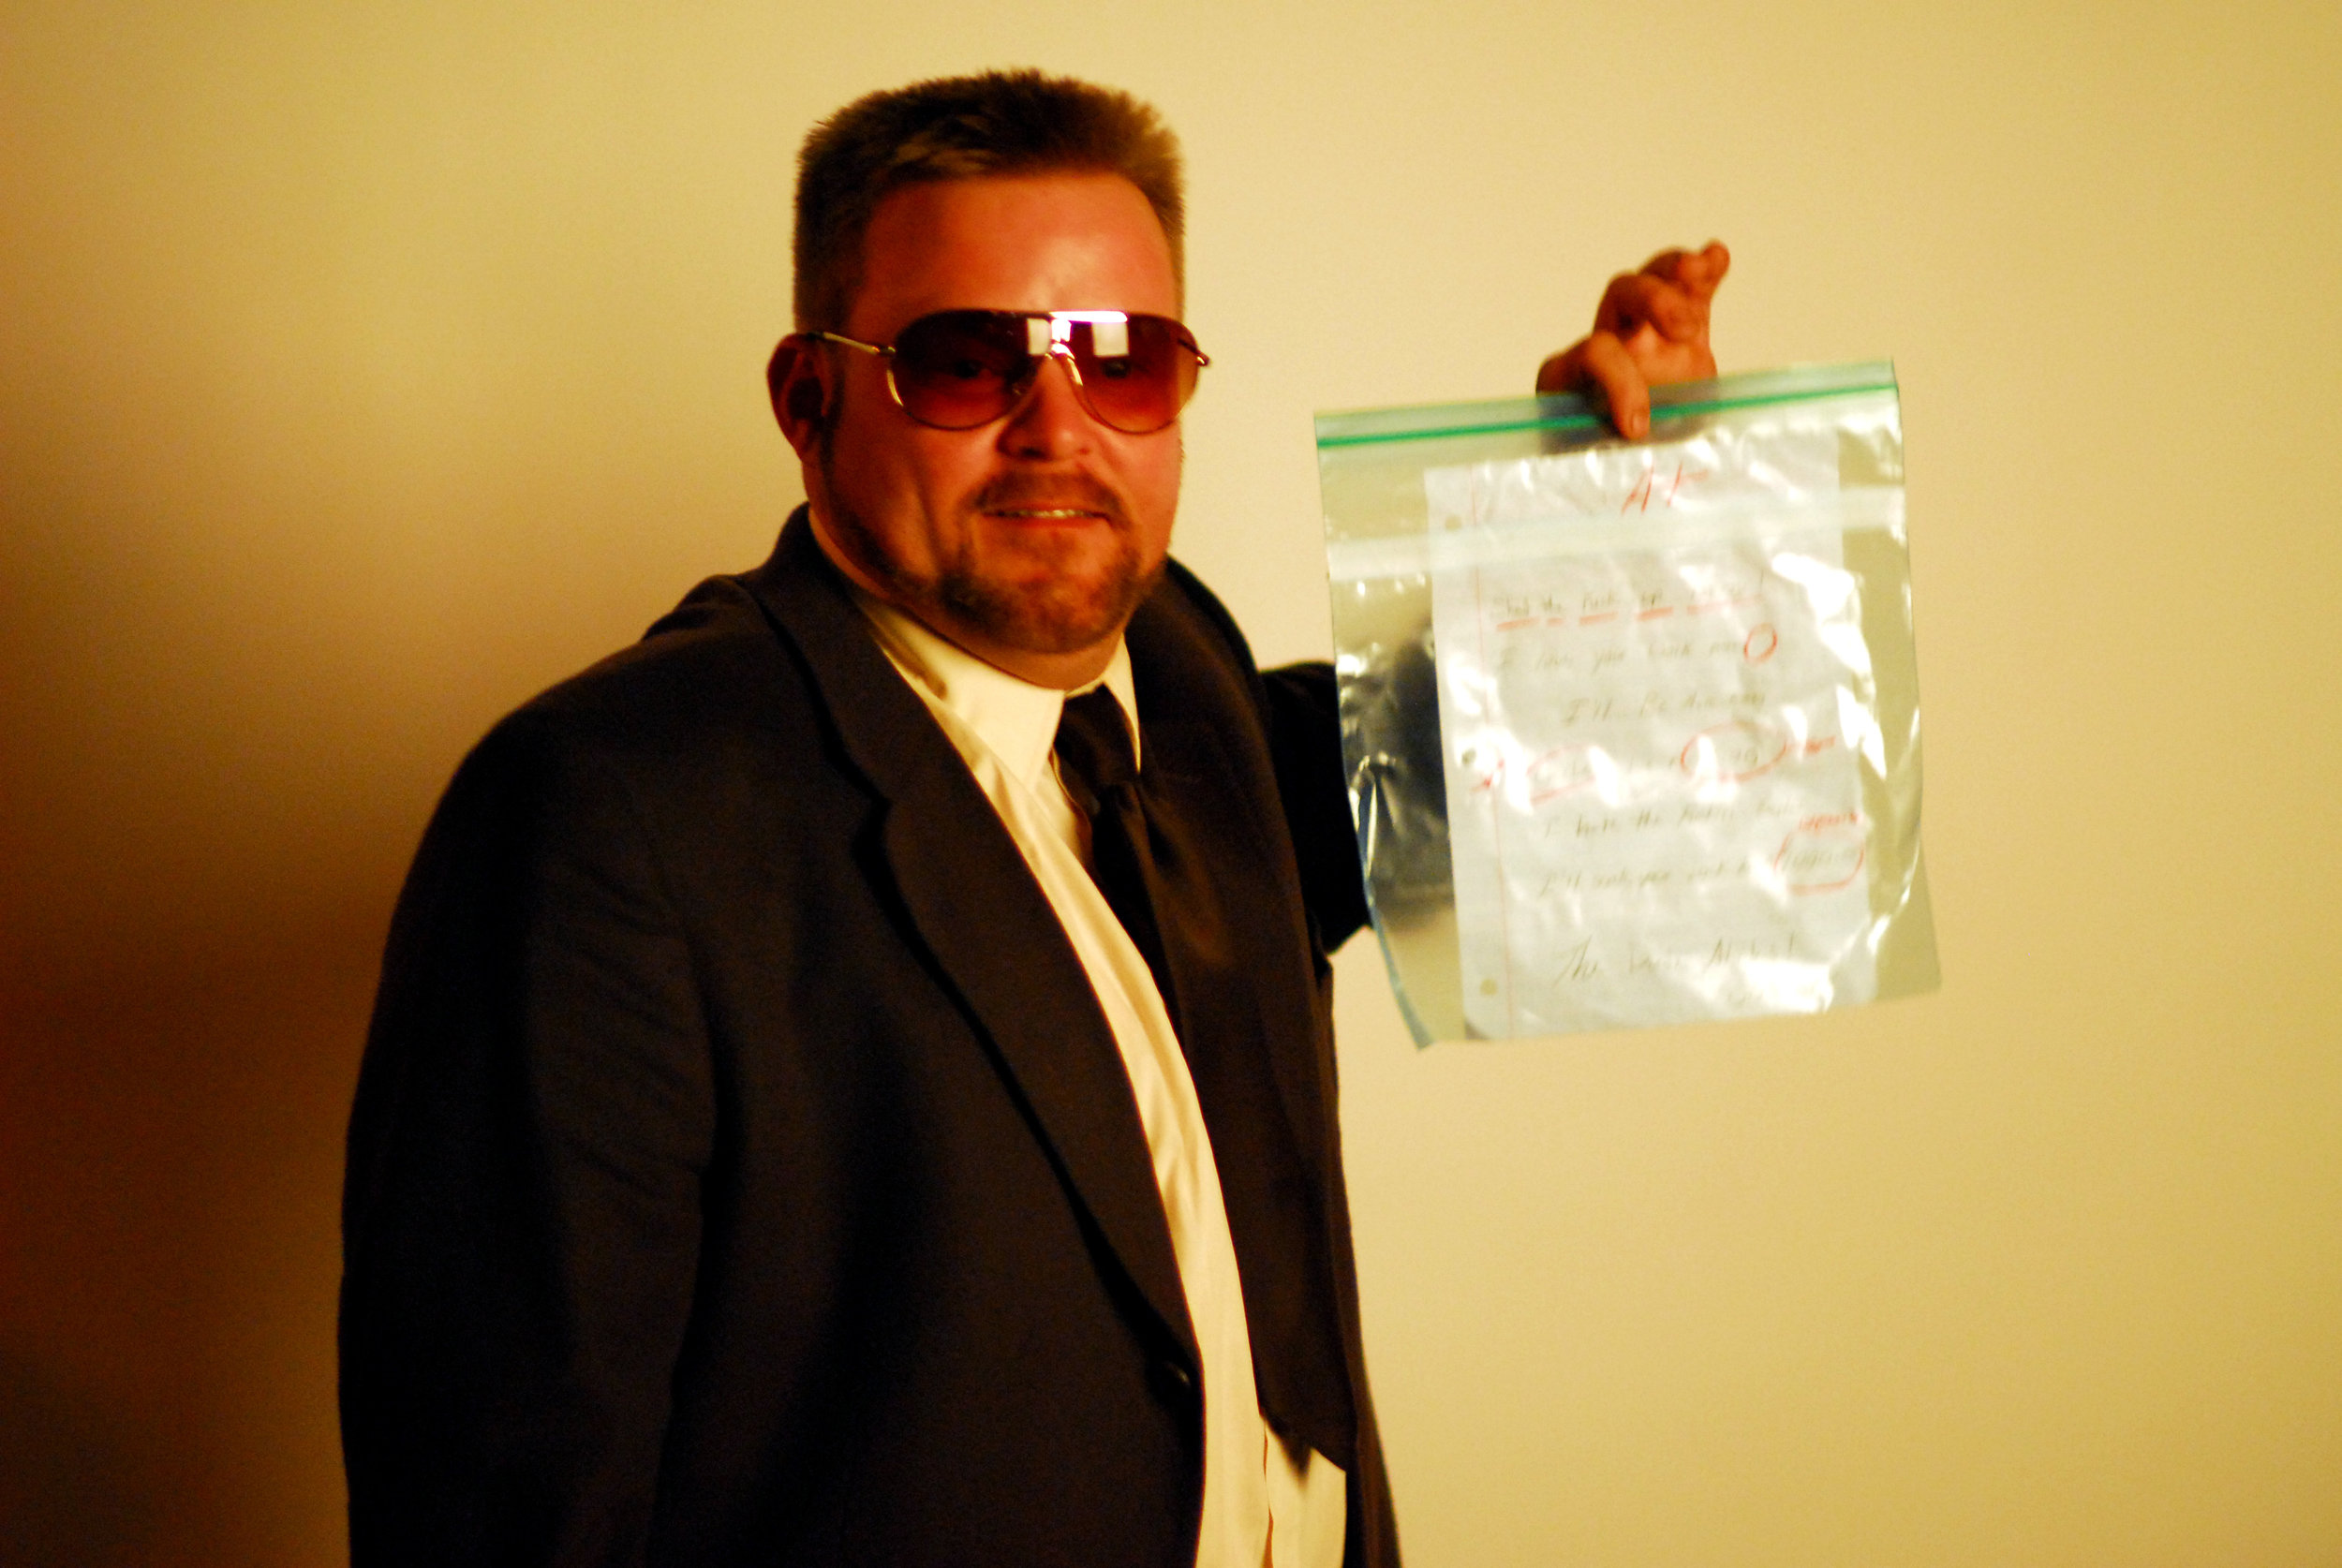 A participant in the NYC  Lebowskifest , dressed as John Goodman's character, holds up homework contained in a Ziploc bag on Sunday, November 16, 2008 at Lucky Strikes Lanes in New York, NY.